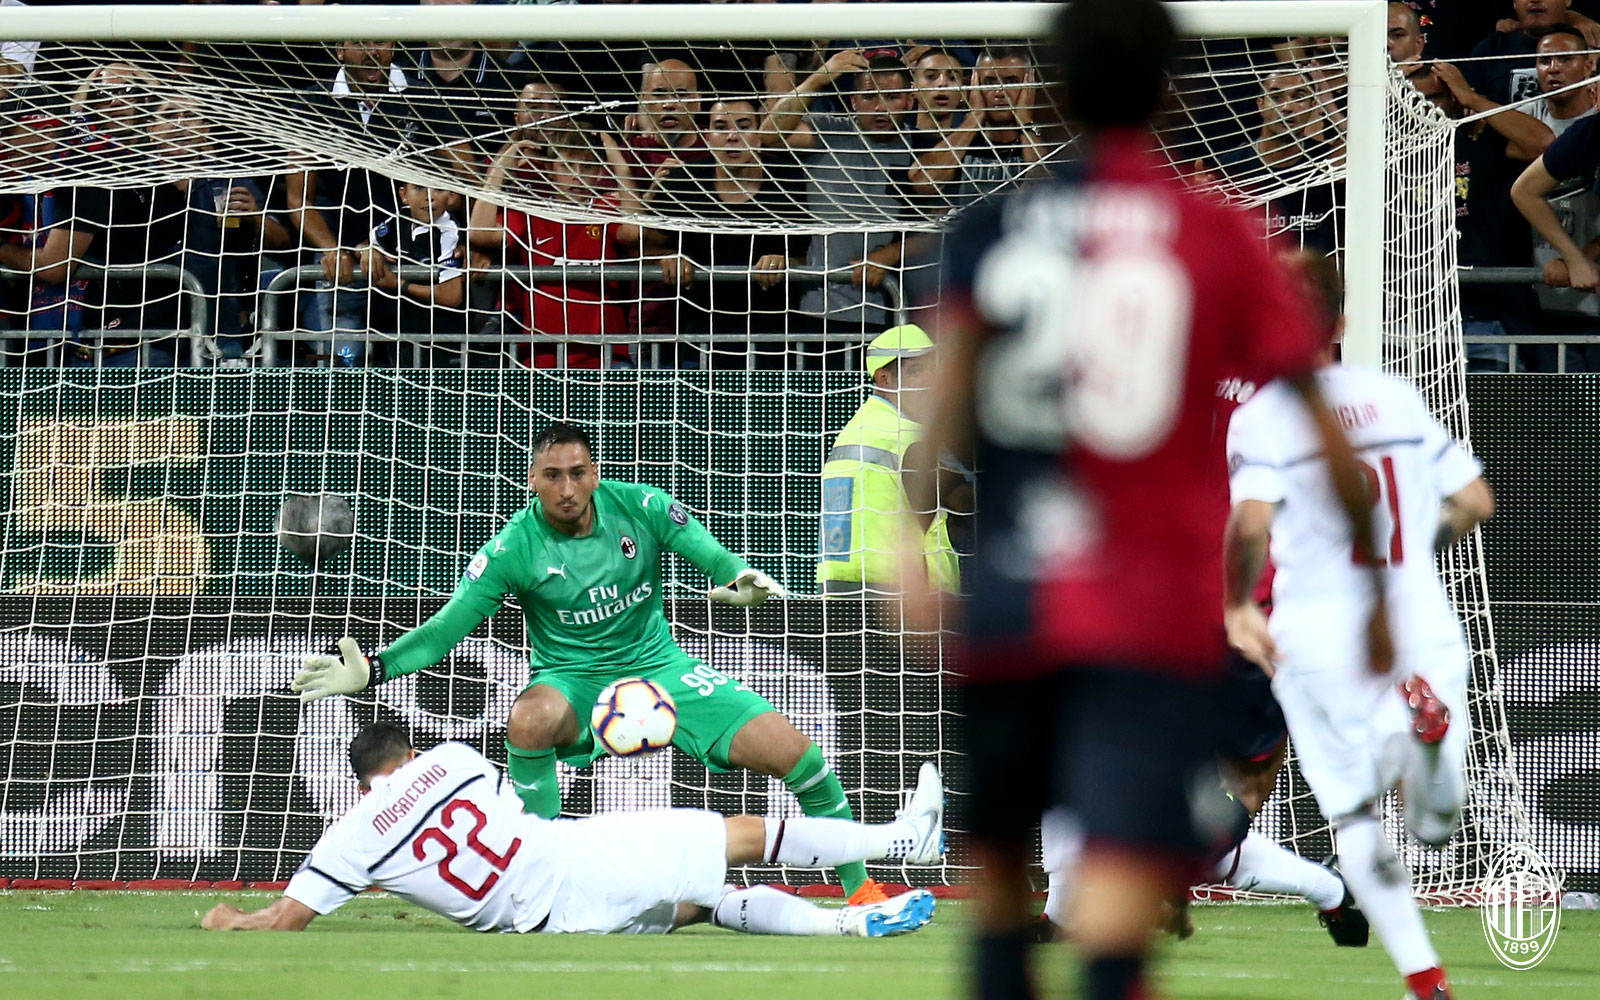 Gianluigi Donnarumma during Cagliari-Milan at Sardegna Arena on September 16, 2018. (@acmilan.com)